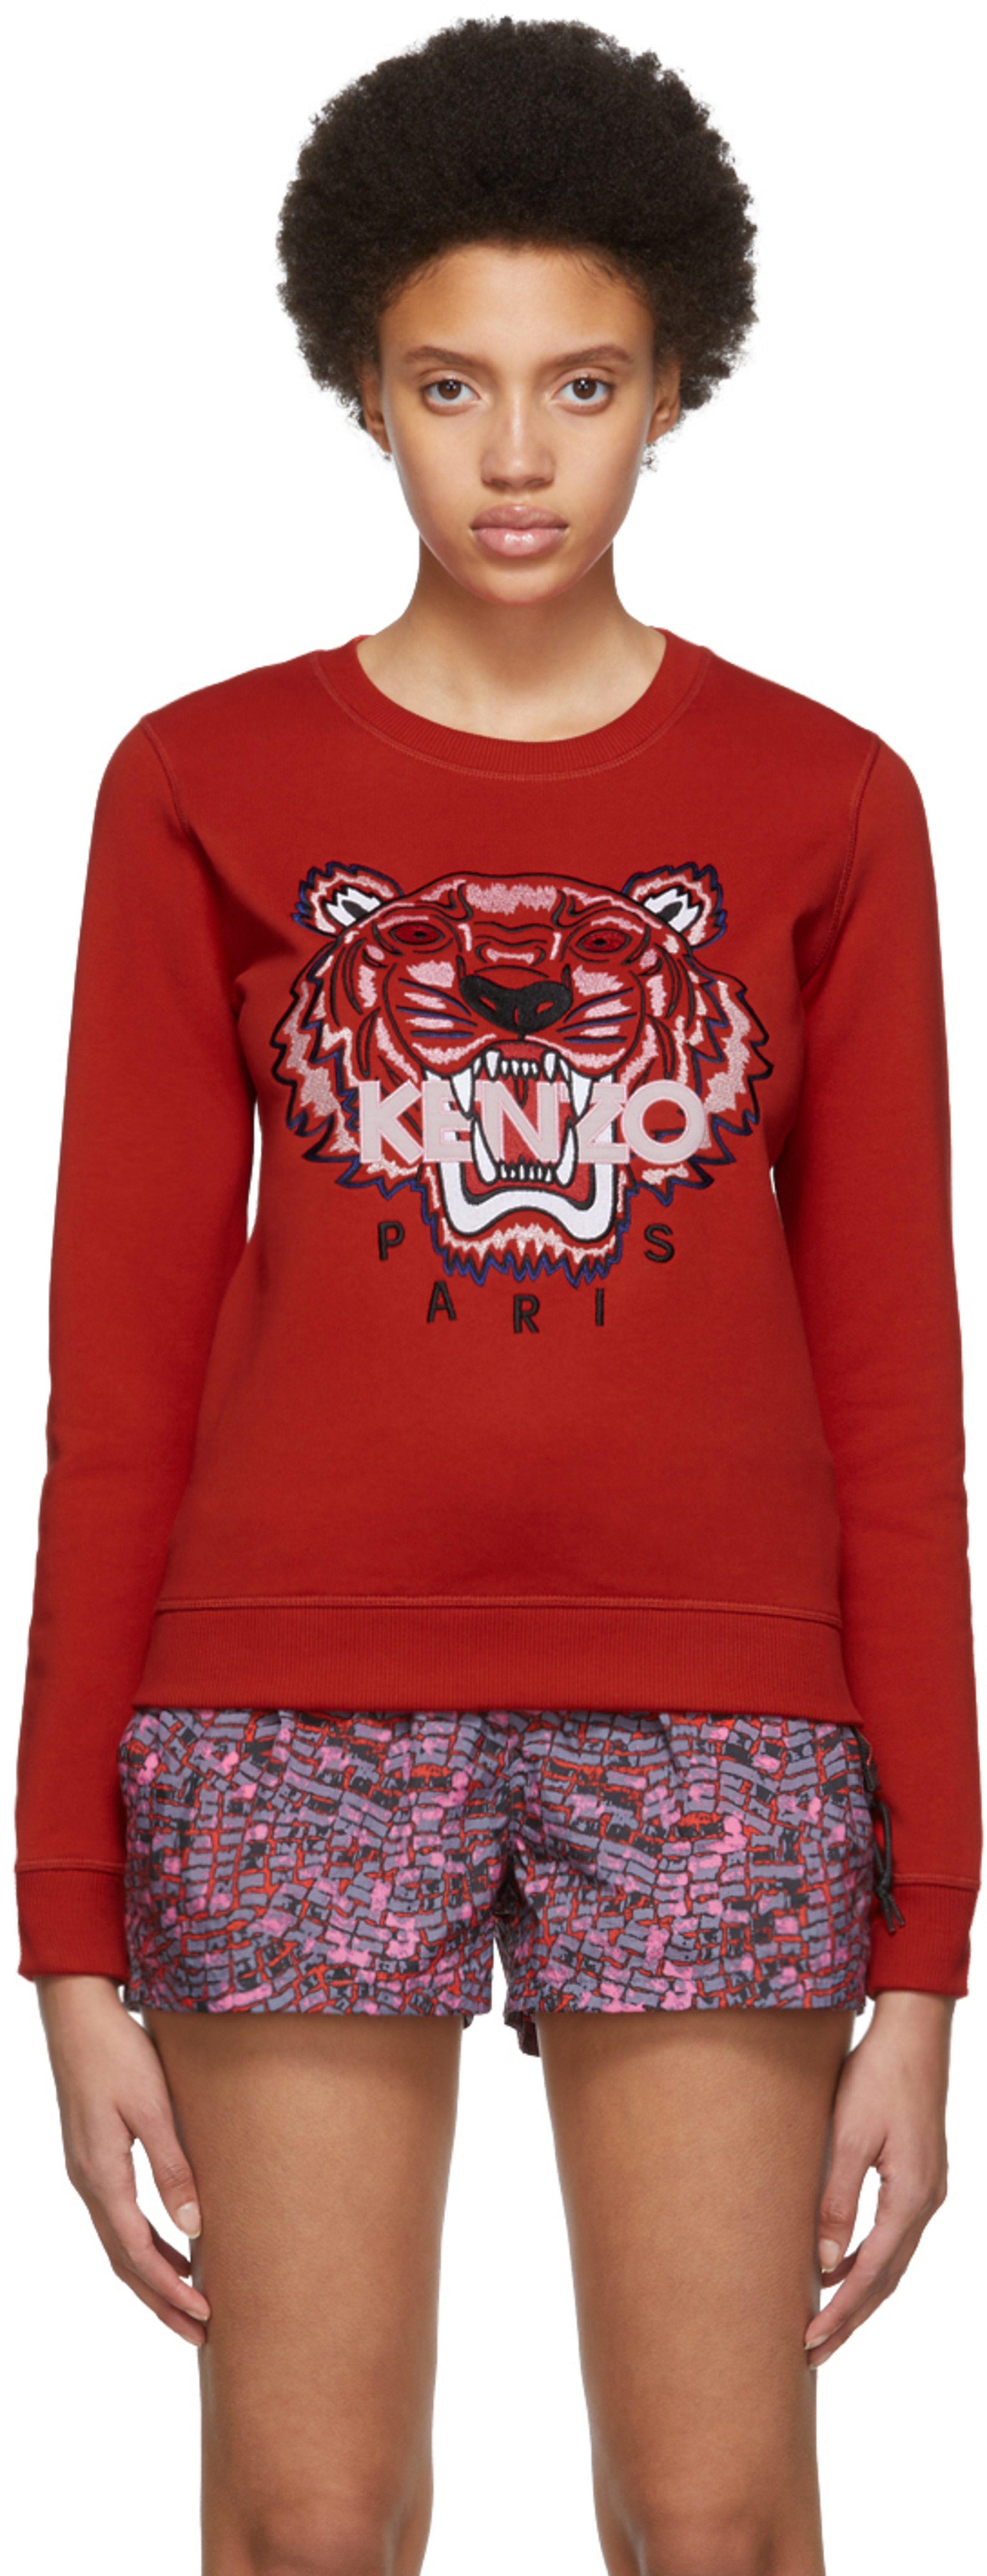 a0c4c2771b7 Kenzo for Women SS19 Collection